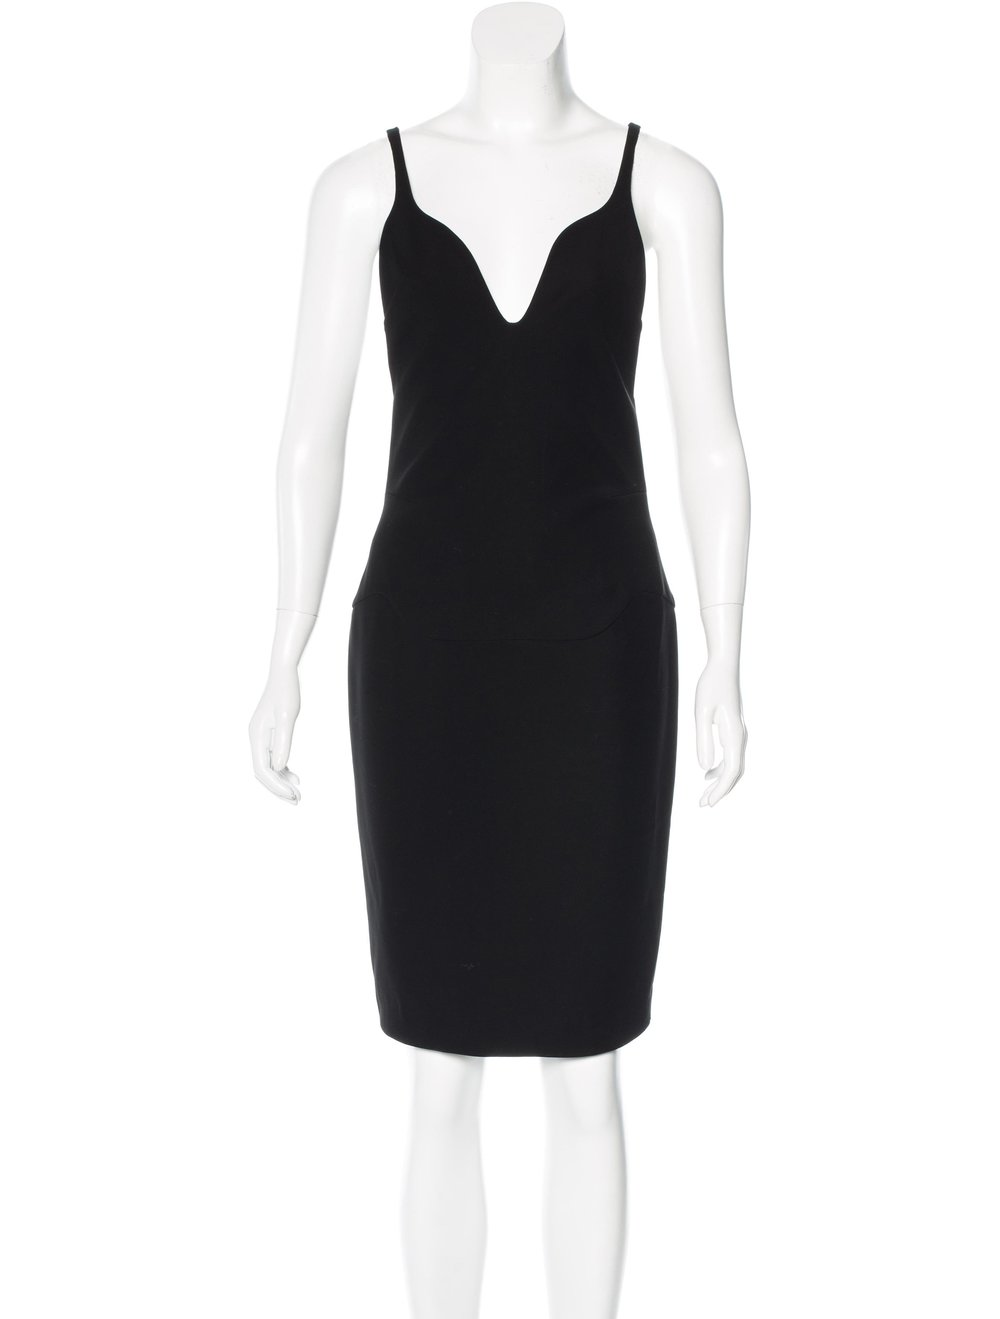 - MUGLER CADY SLIP DRESS W/ TAGSSize: US 4$437.50